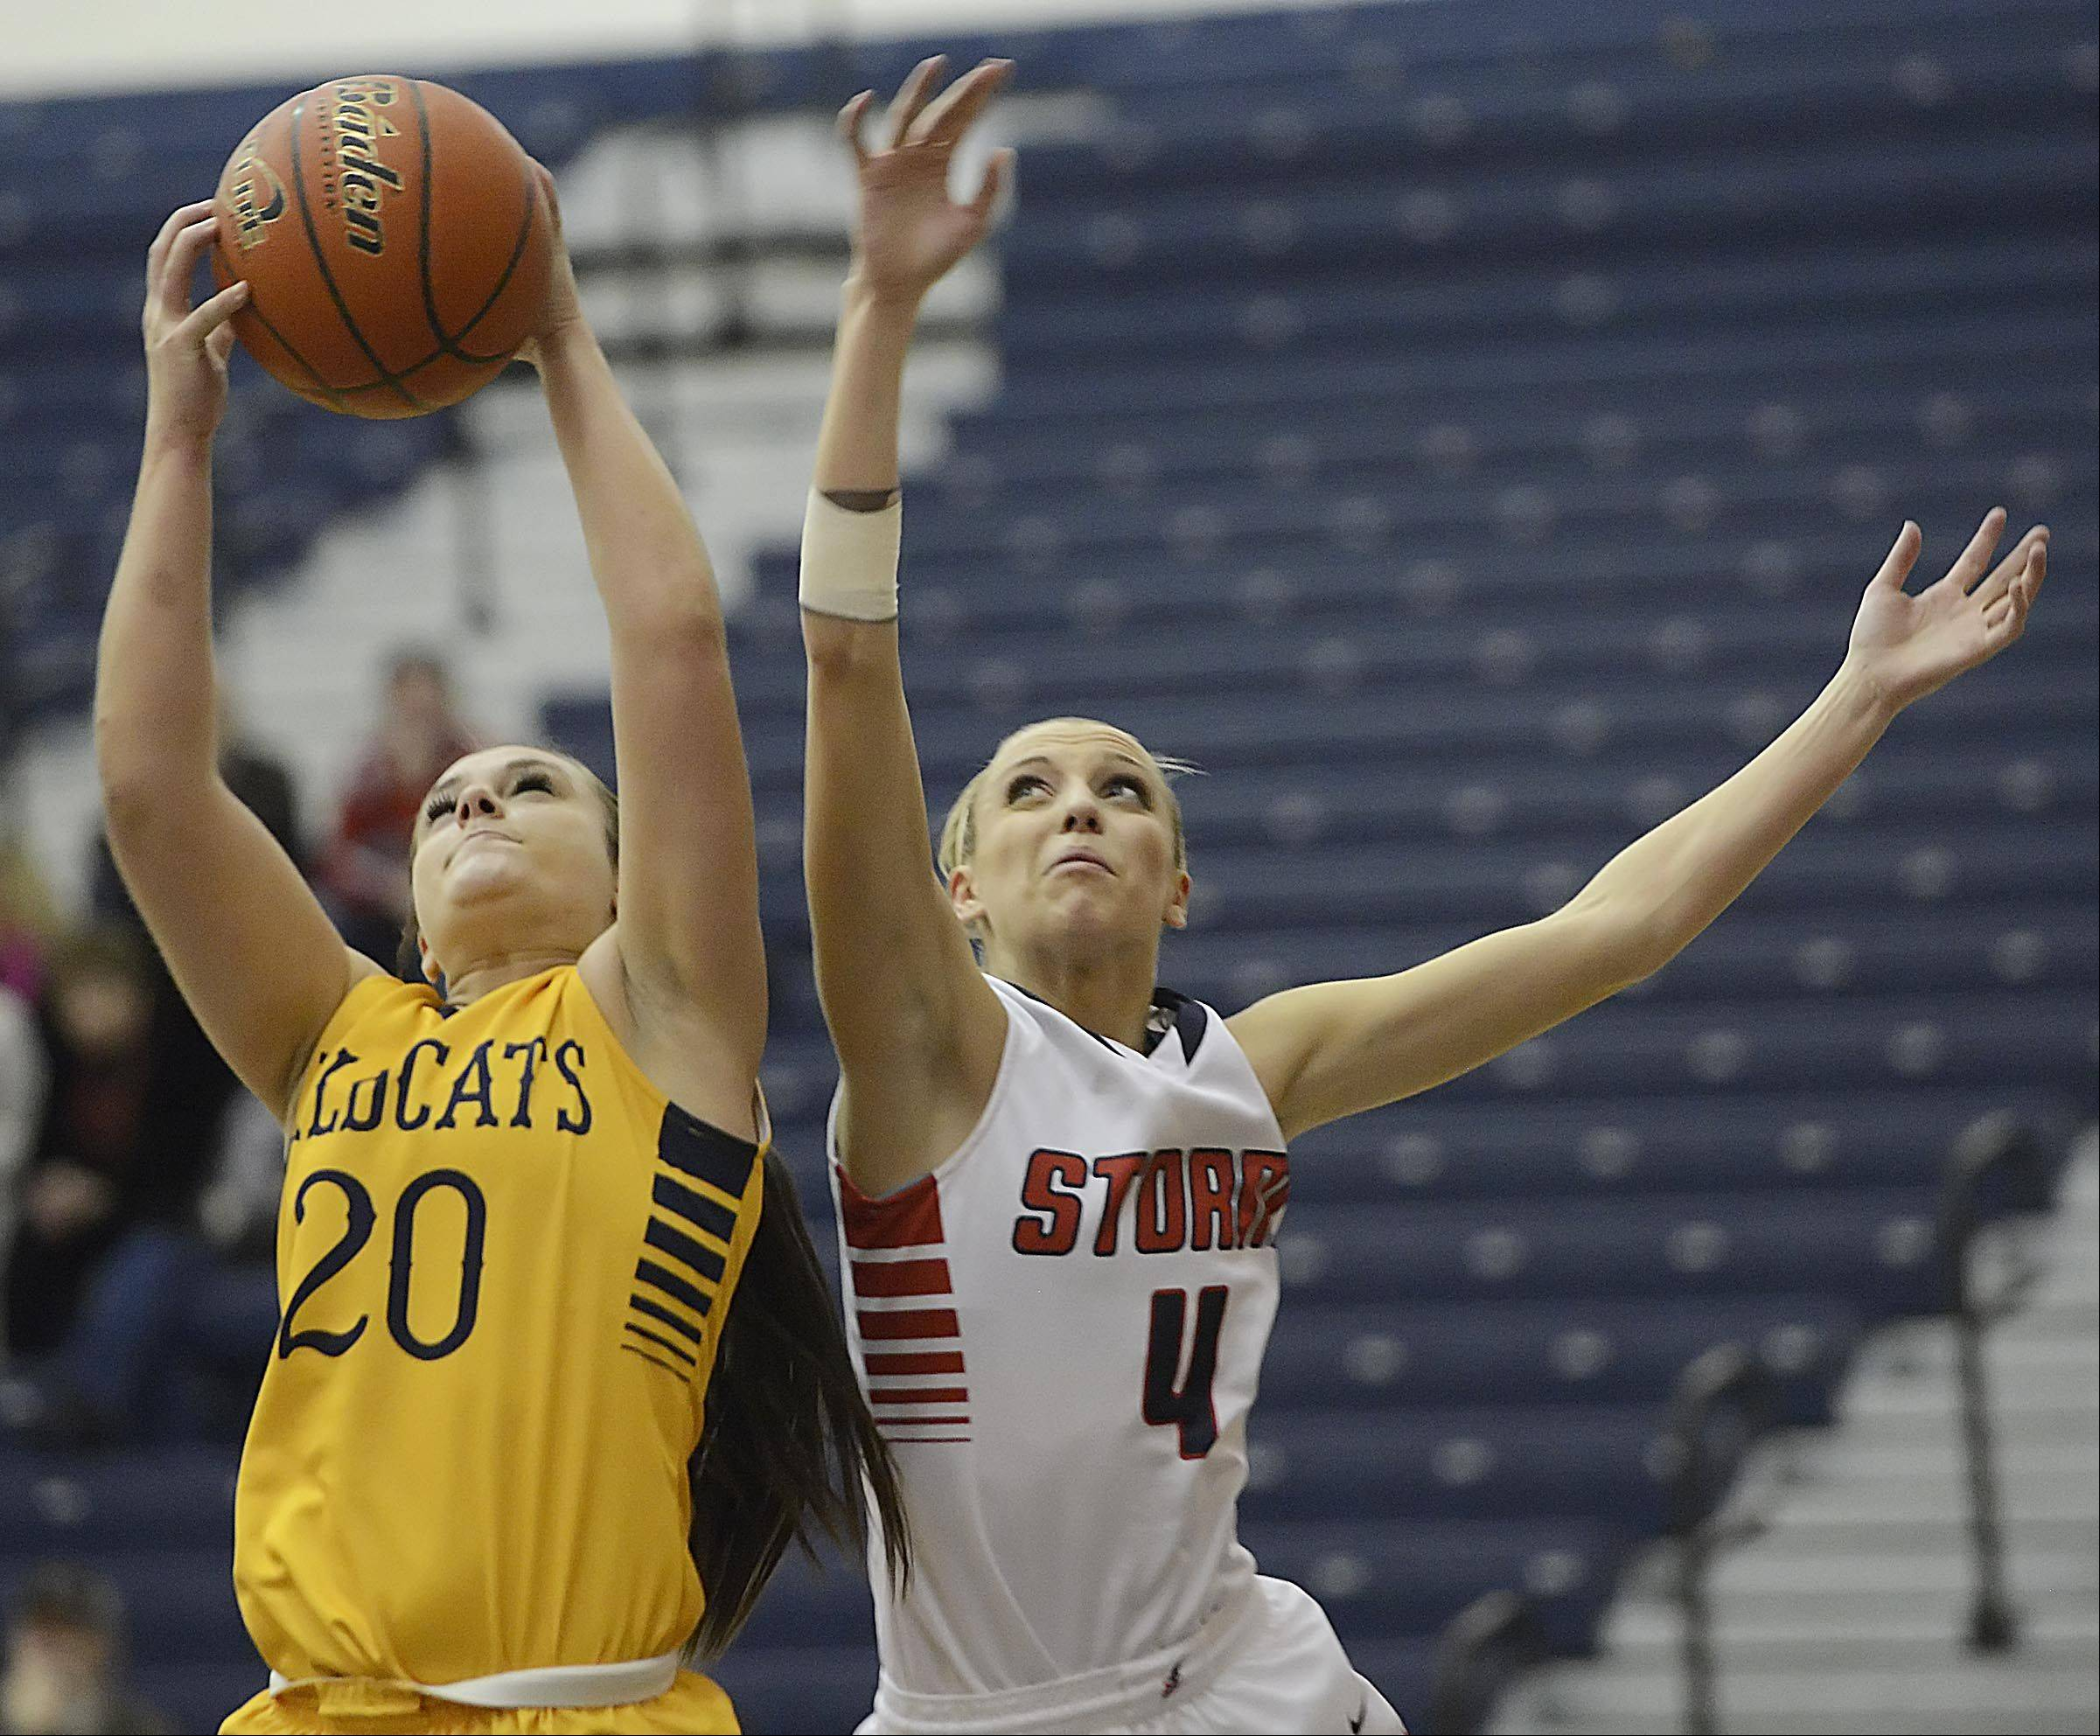 Neuqua Valley's Niki Lazar takes a rebound from South Elgin's Savanah Uveges Monday in South Elgin.